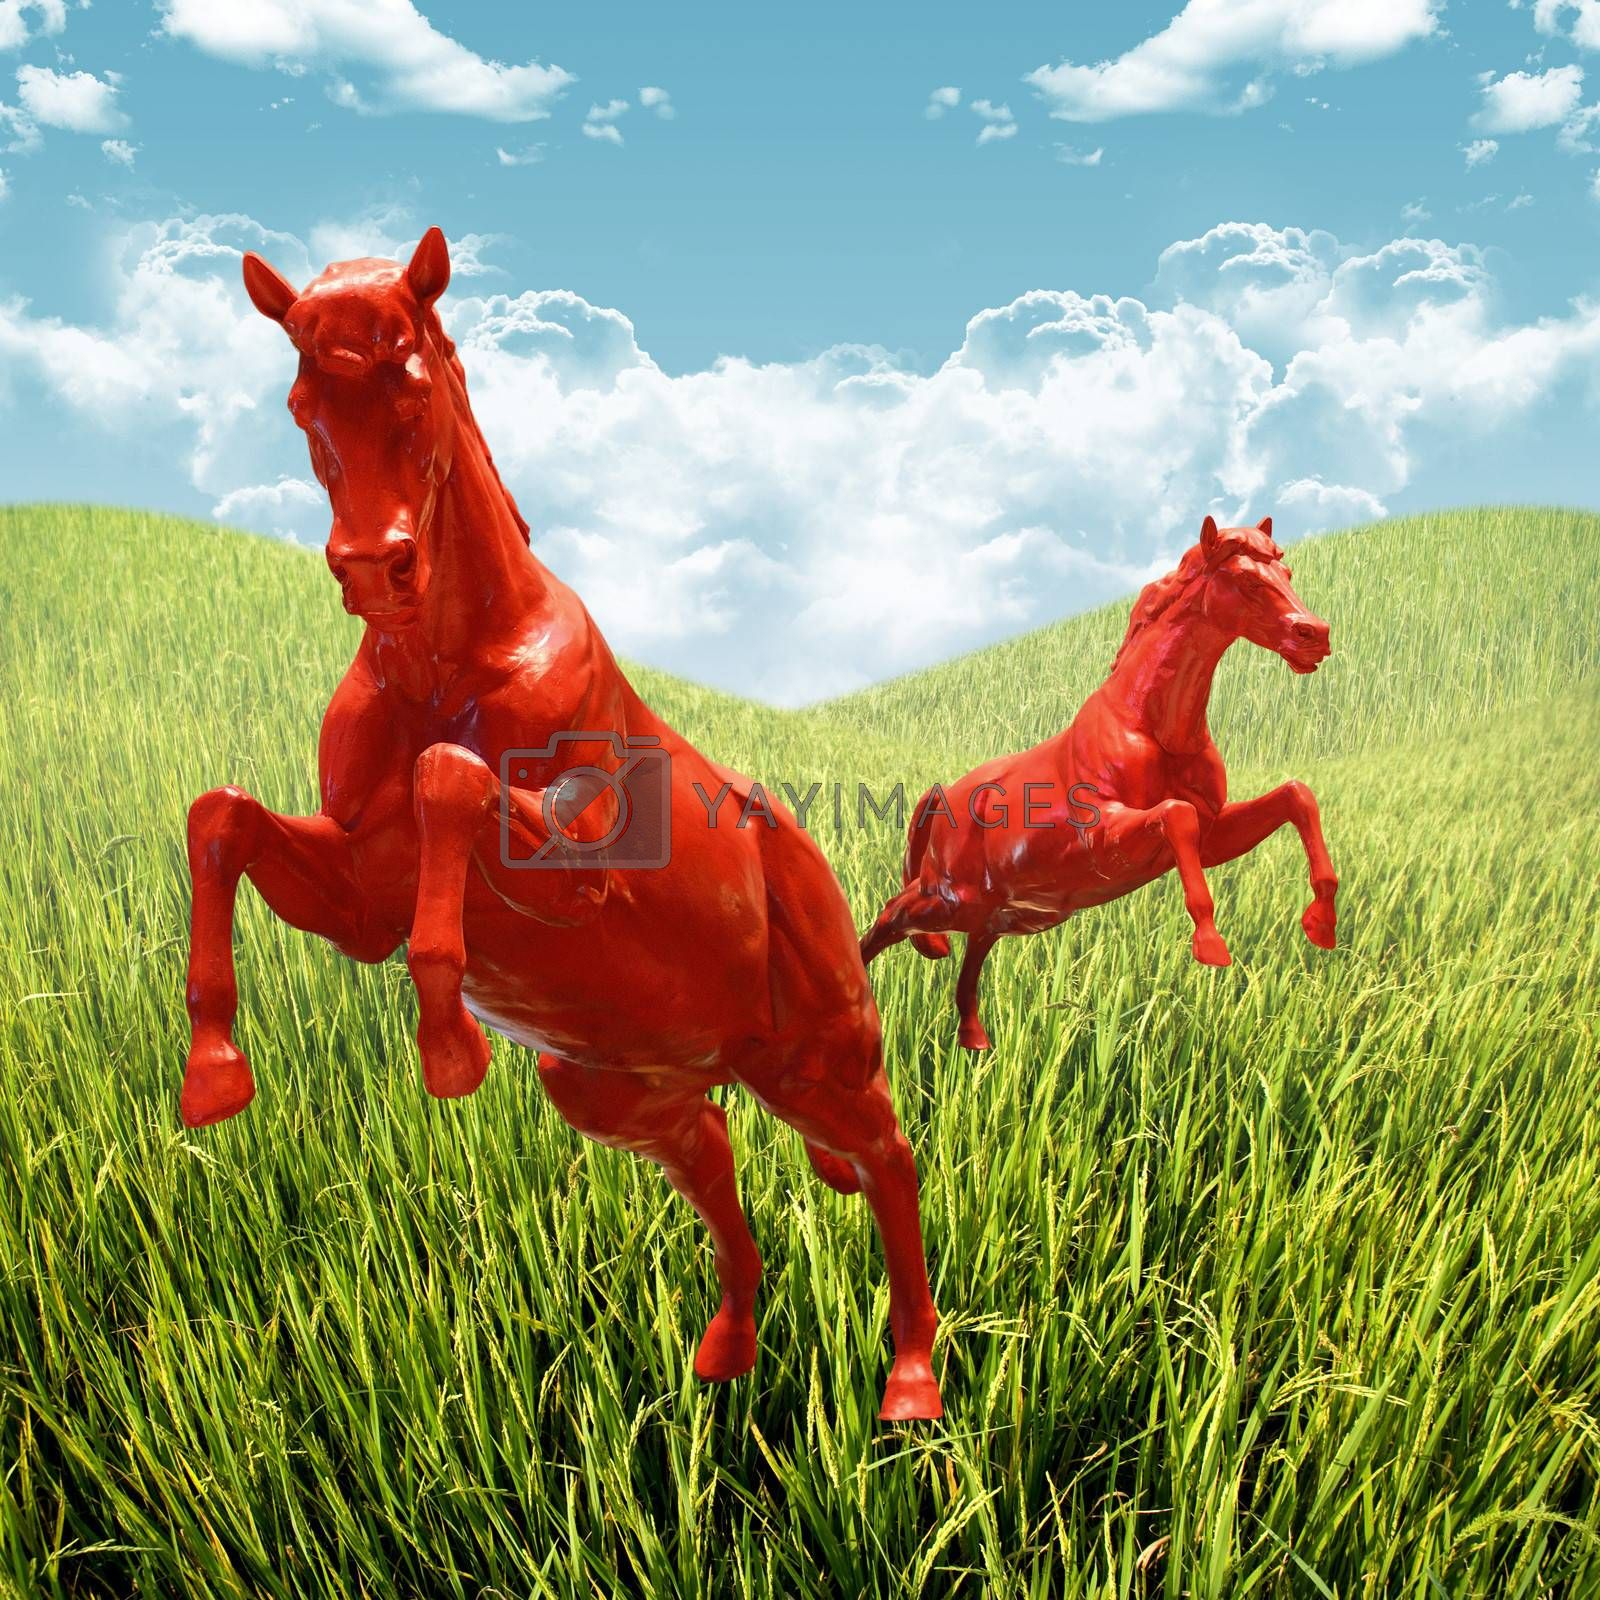 Red Horse Running In The Field Royalty Free Stock Image Stock Photos Royalty Free Images Vectors Footage Yayimages